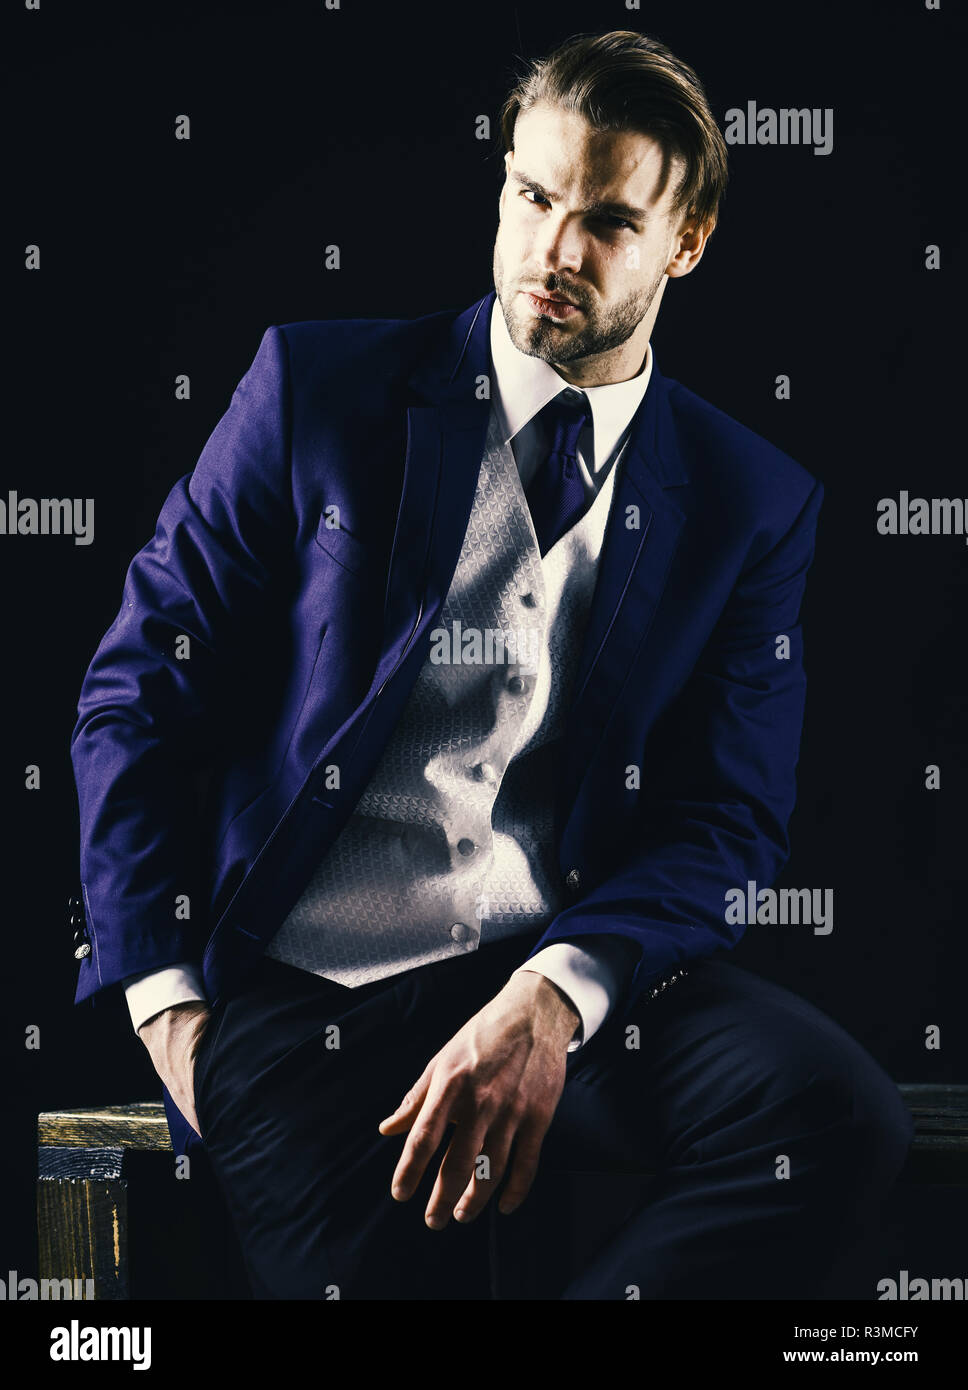 Businessman in formal wear with unshaven face and stylish haircut looks sharp. Young and successful concept. Serious man in classic suit or businessma - Stock Image